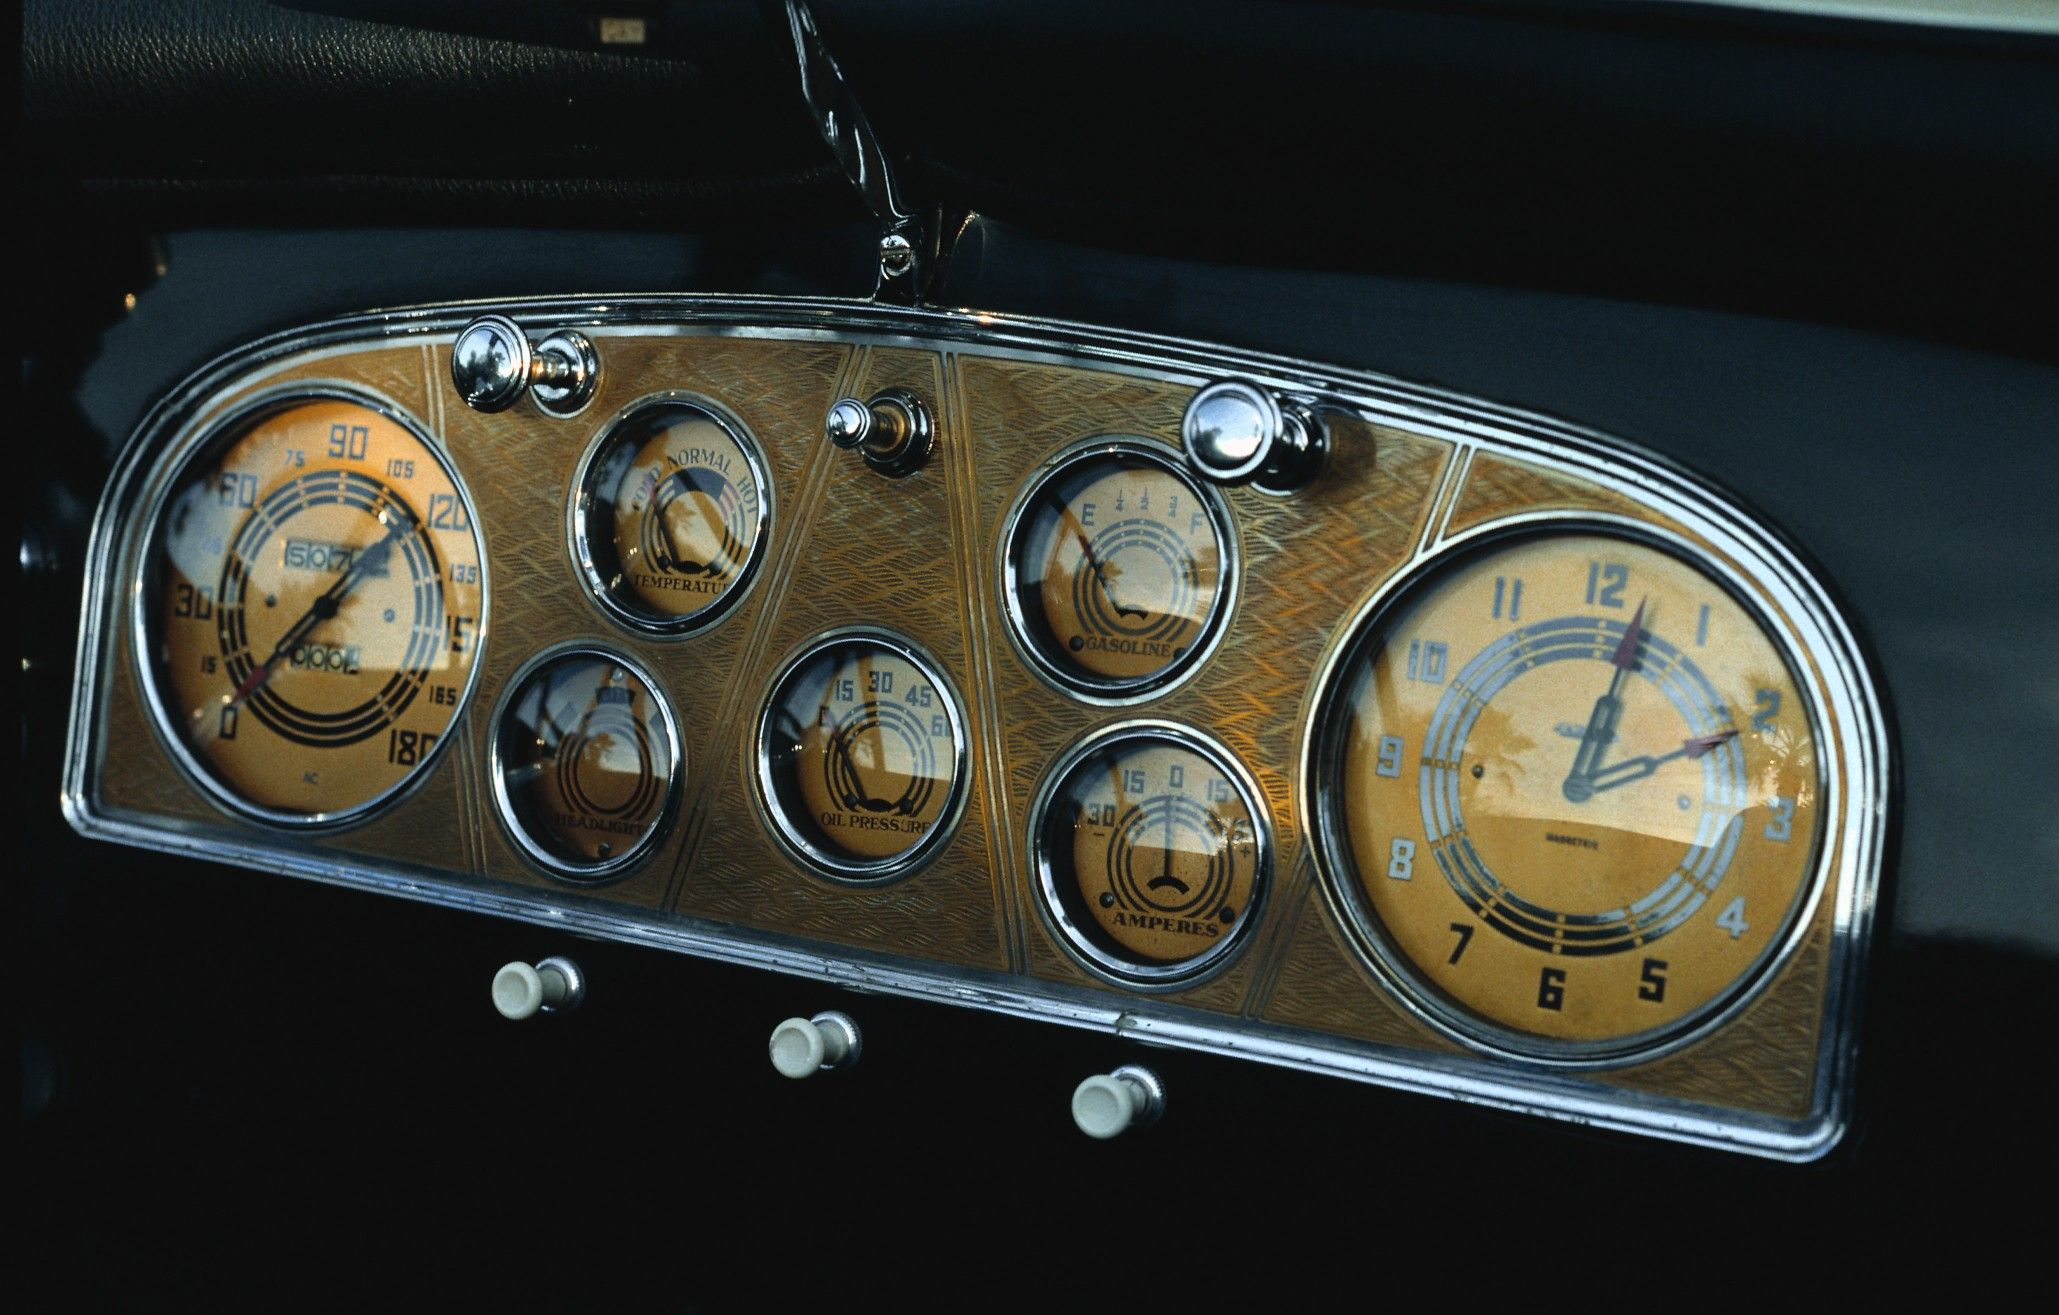 vintage auto dashboards - Google Search | Cool cars | Pinterest ...